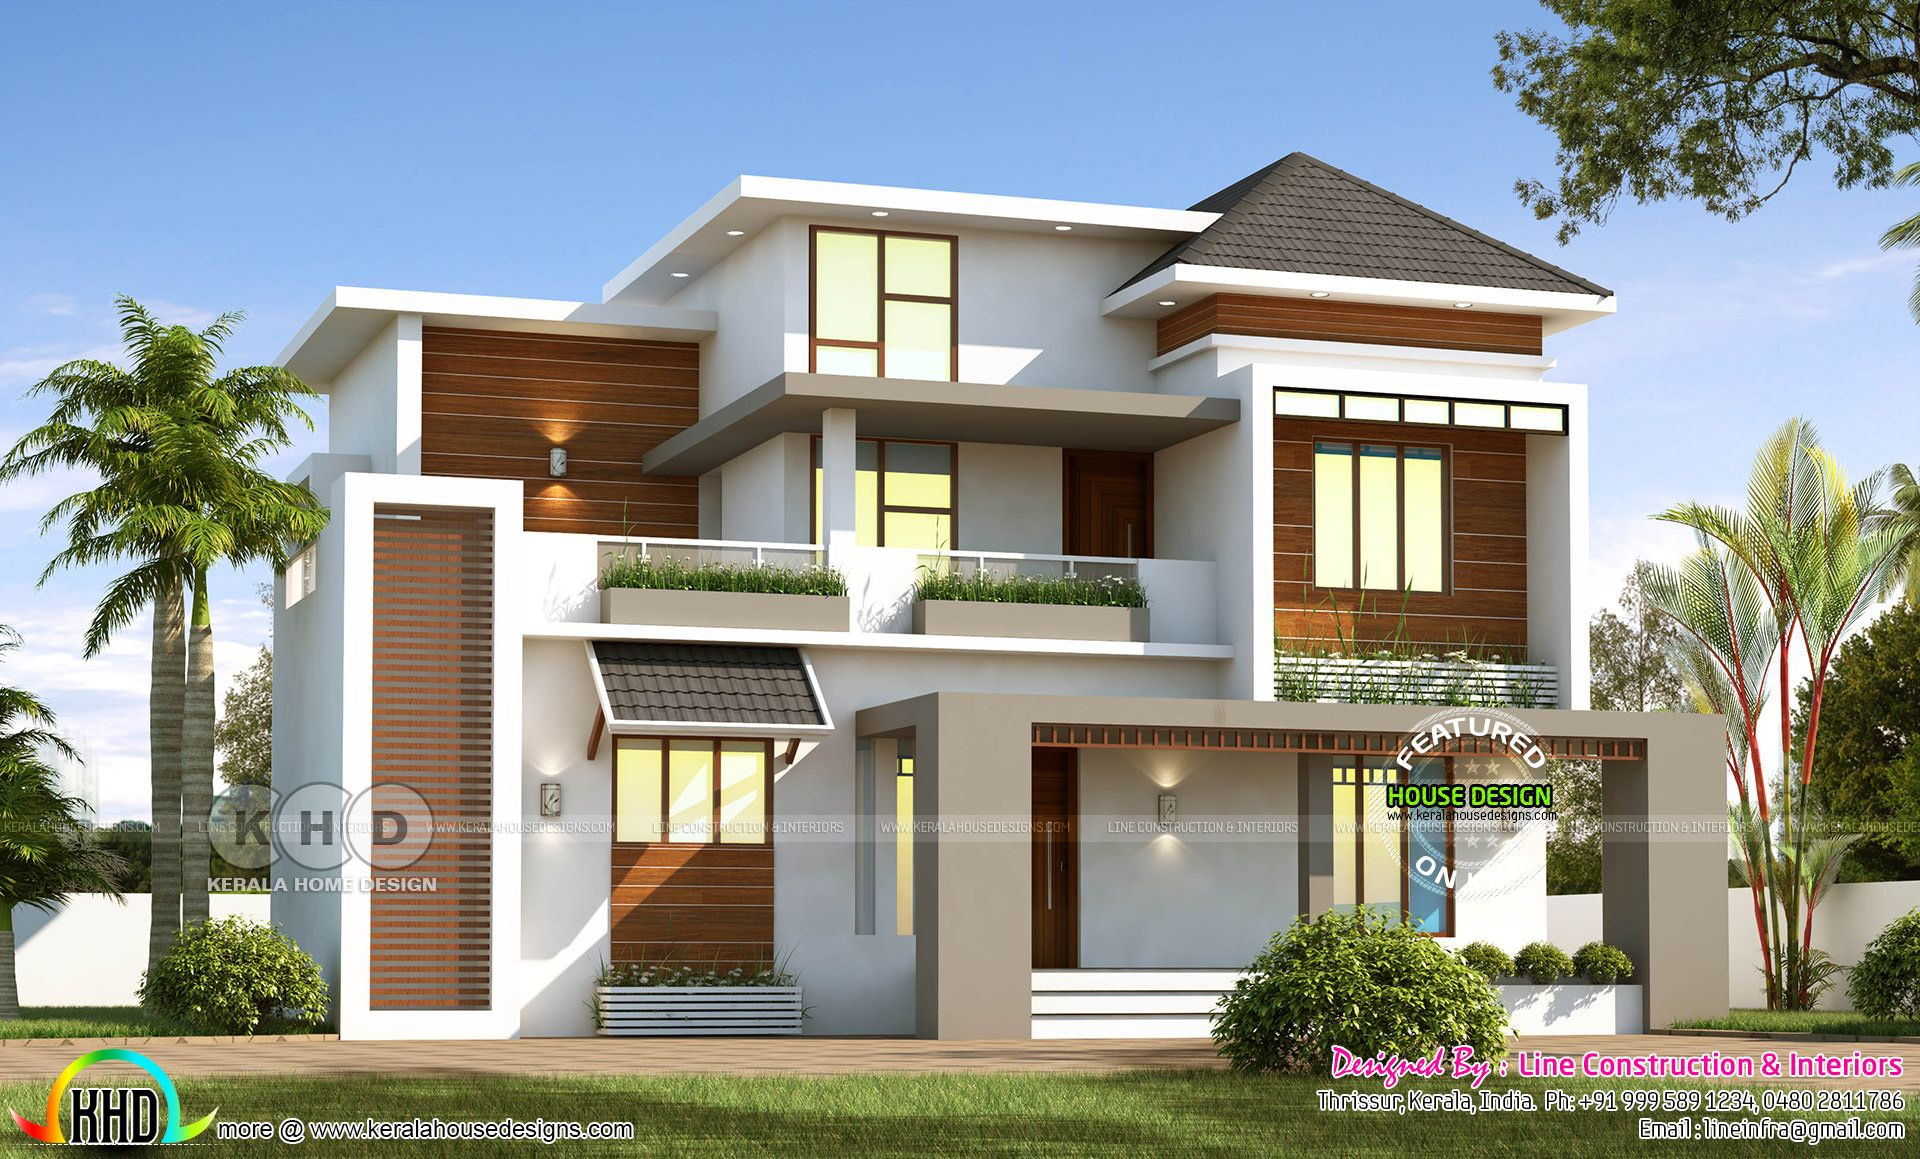 1852 Square Feet 4 Bedroom Beautiful Modern Home Beautiful Modern Homes Kerala House Design Duplex House Design